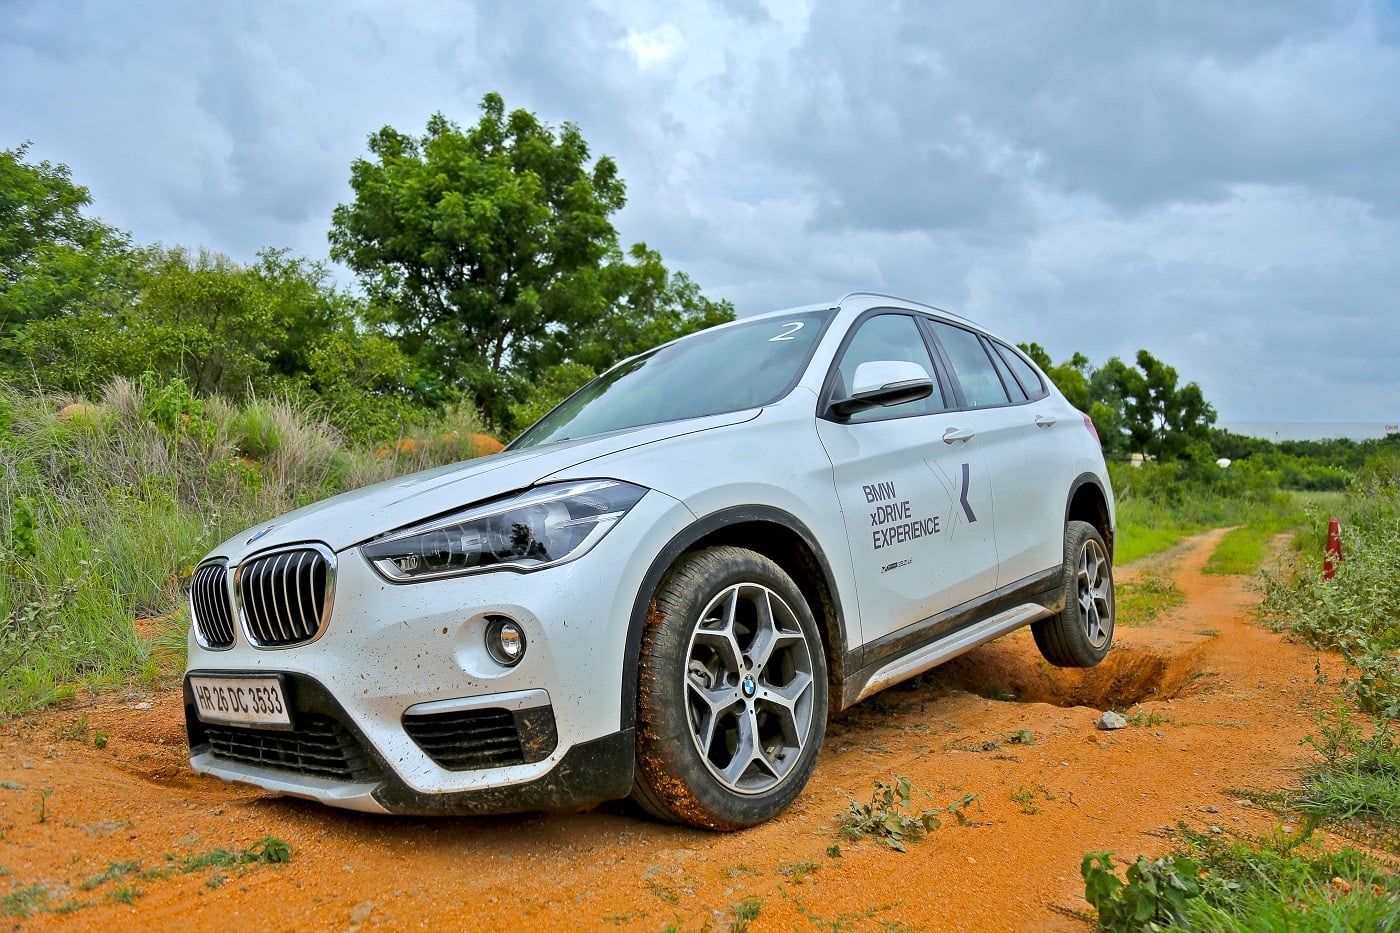 Bmw Xdrive Experience India 2017 Cities Cars Images